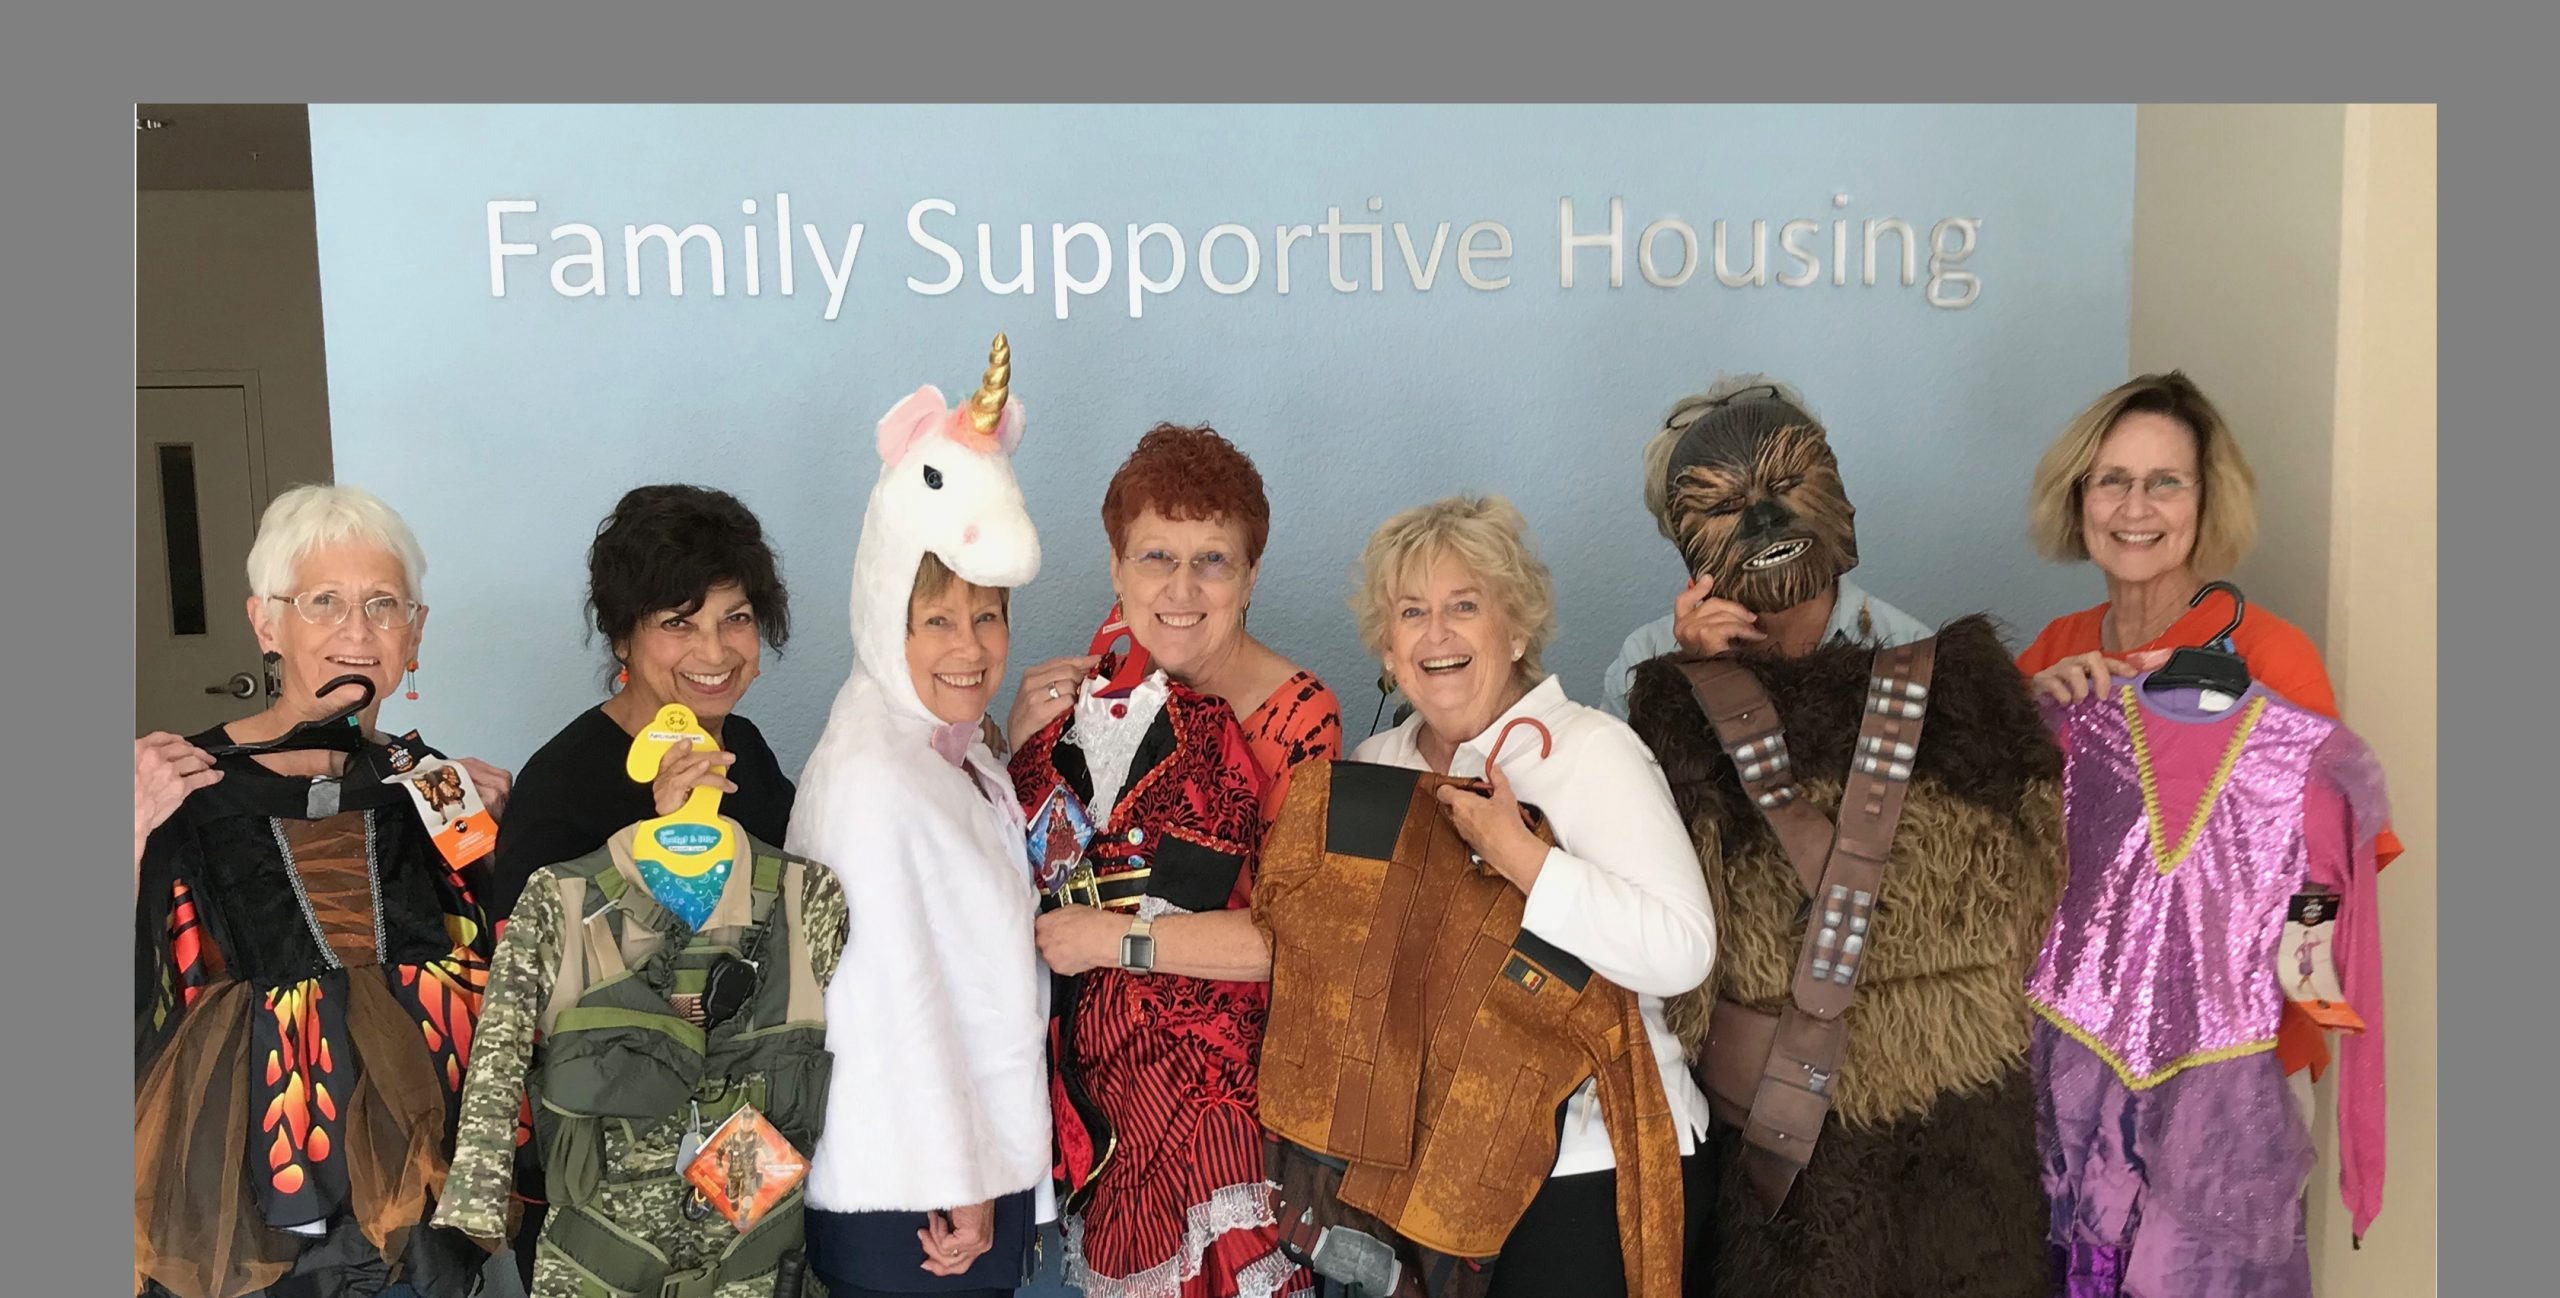 Assist-a-Shelter - Halloween at Family Supportive Housing